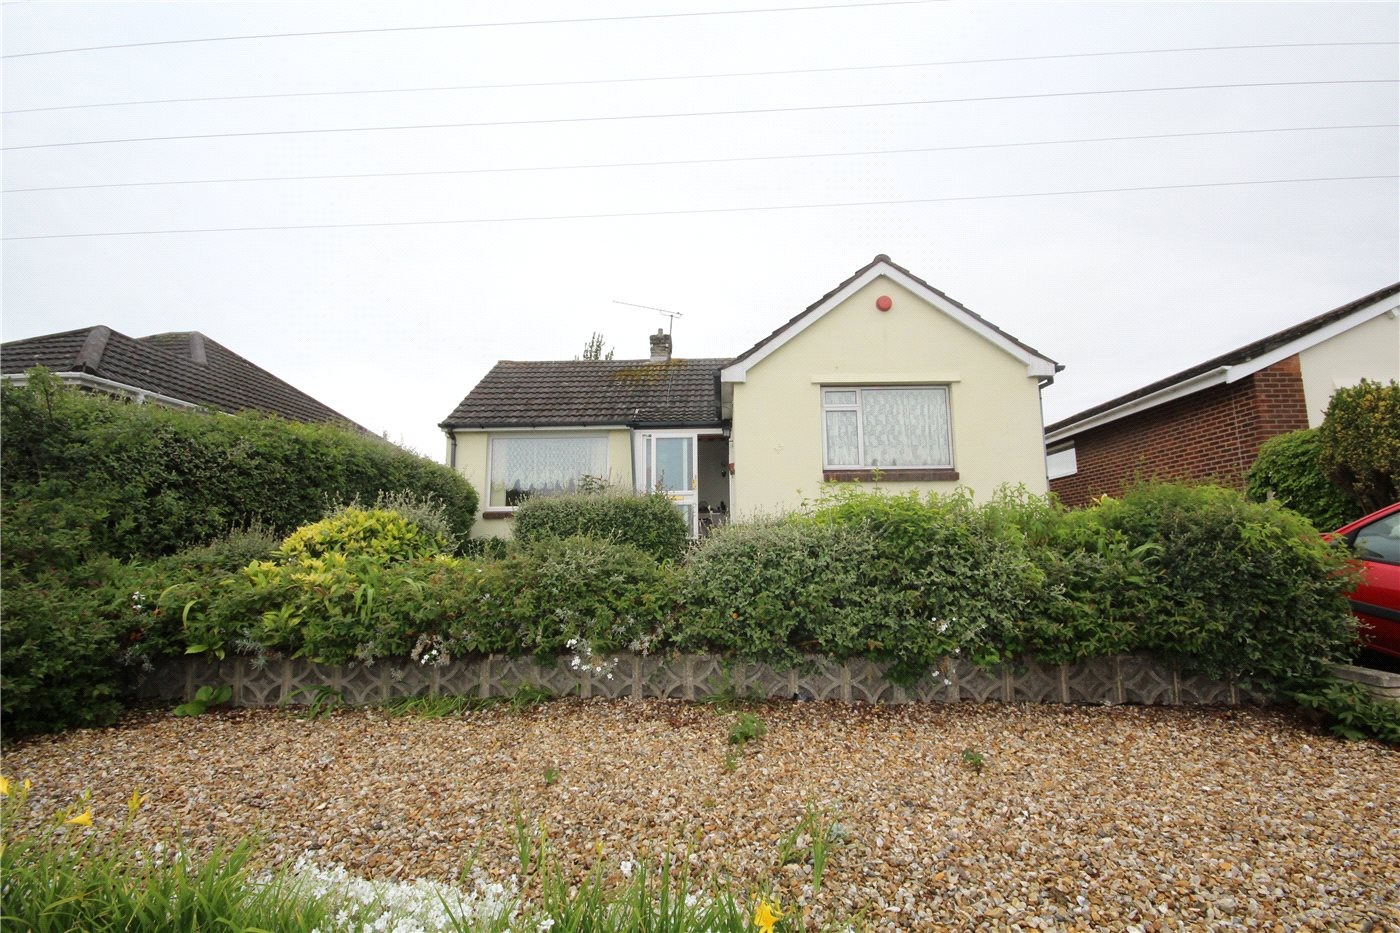 2 Bedrooms Detached Bungalow for sale in Corbiere Avenue, Parkstone, Poole, Dorset, BH12